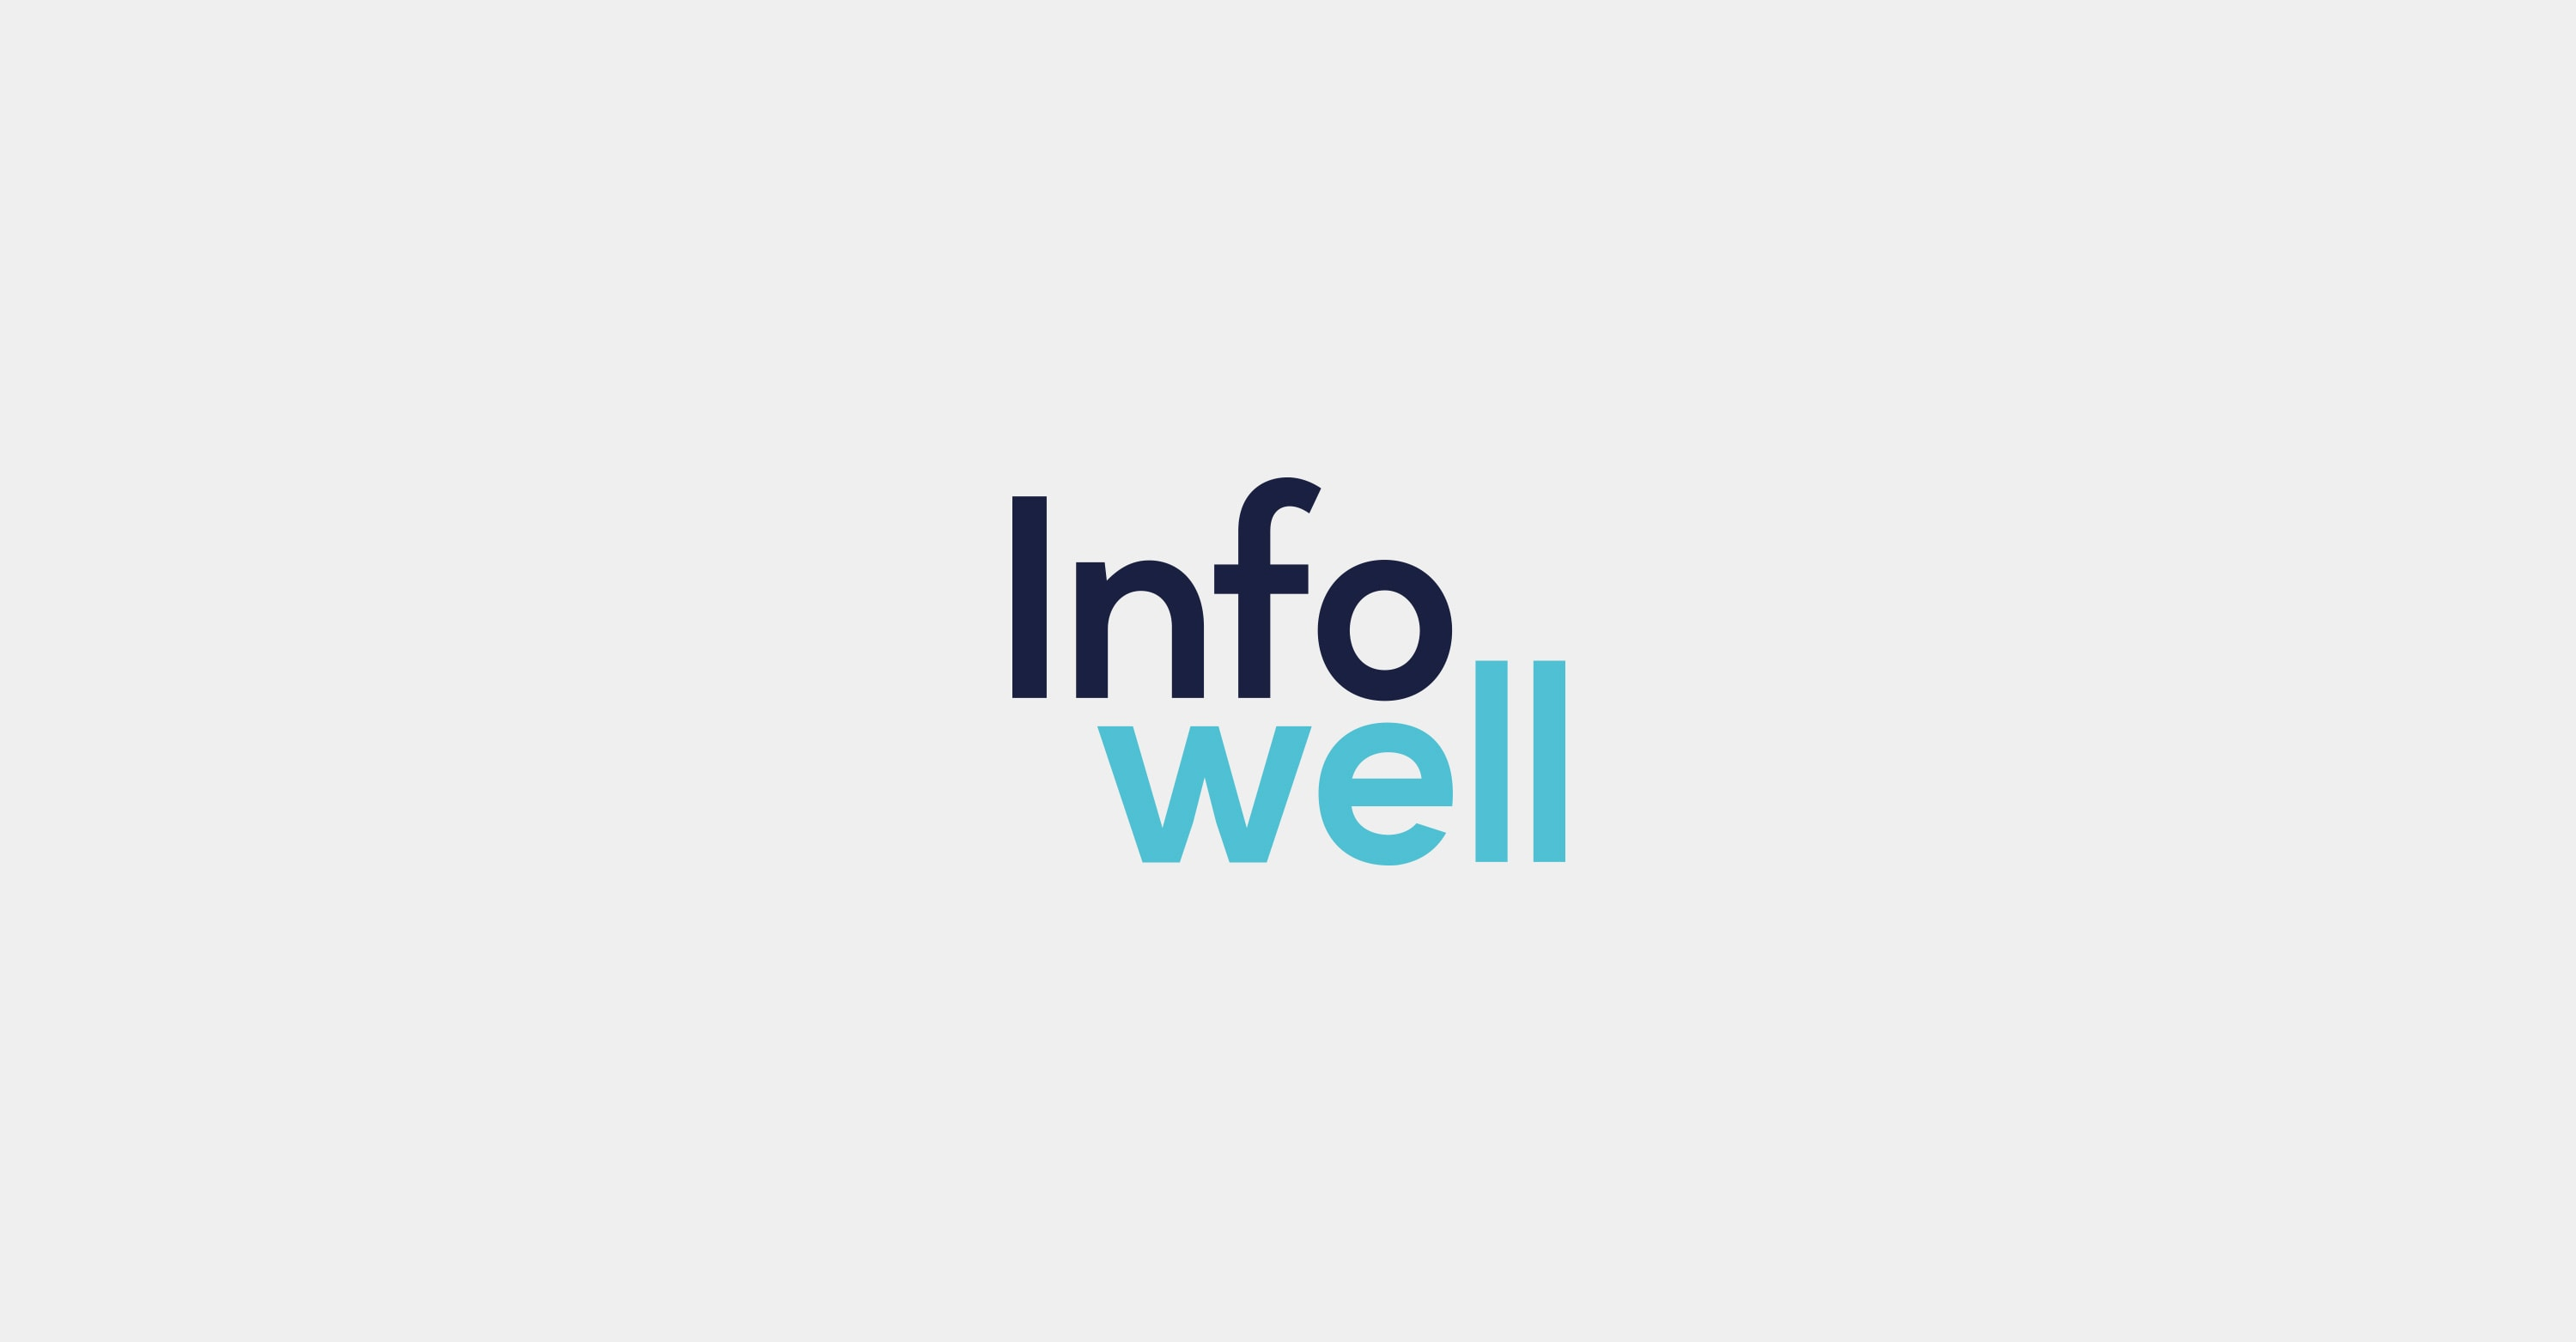 infowell marketing